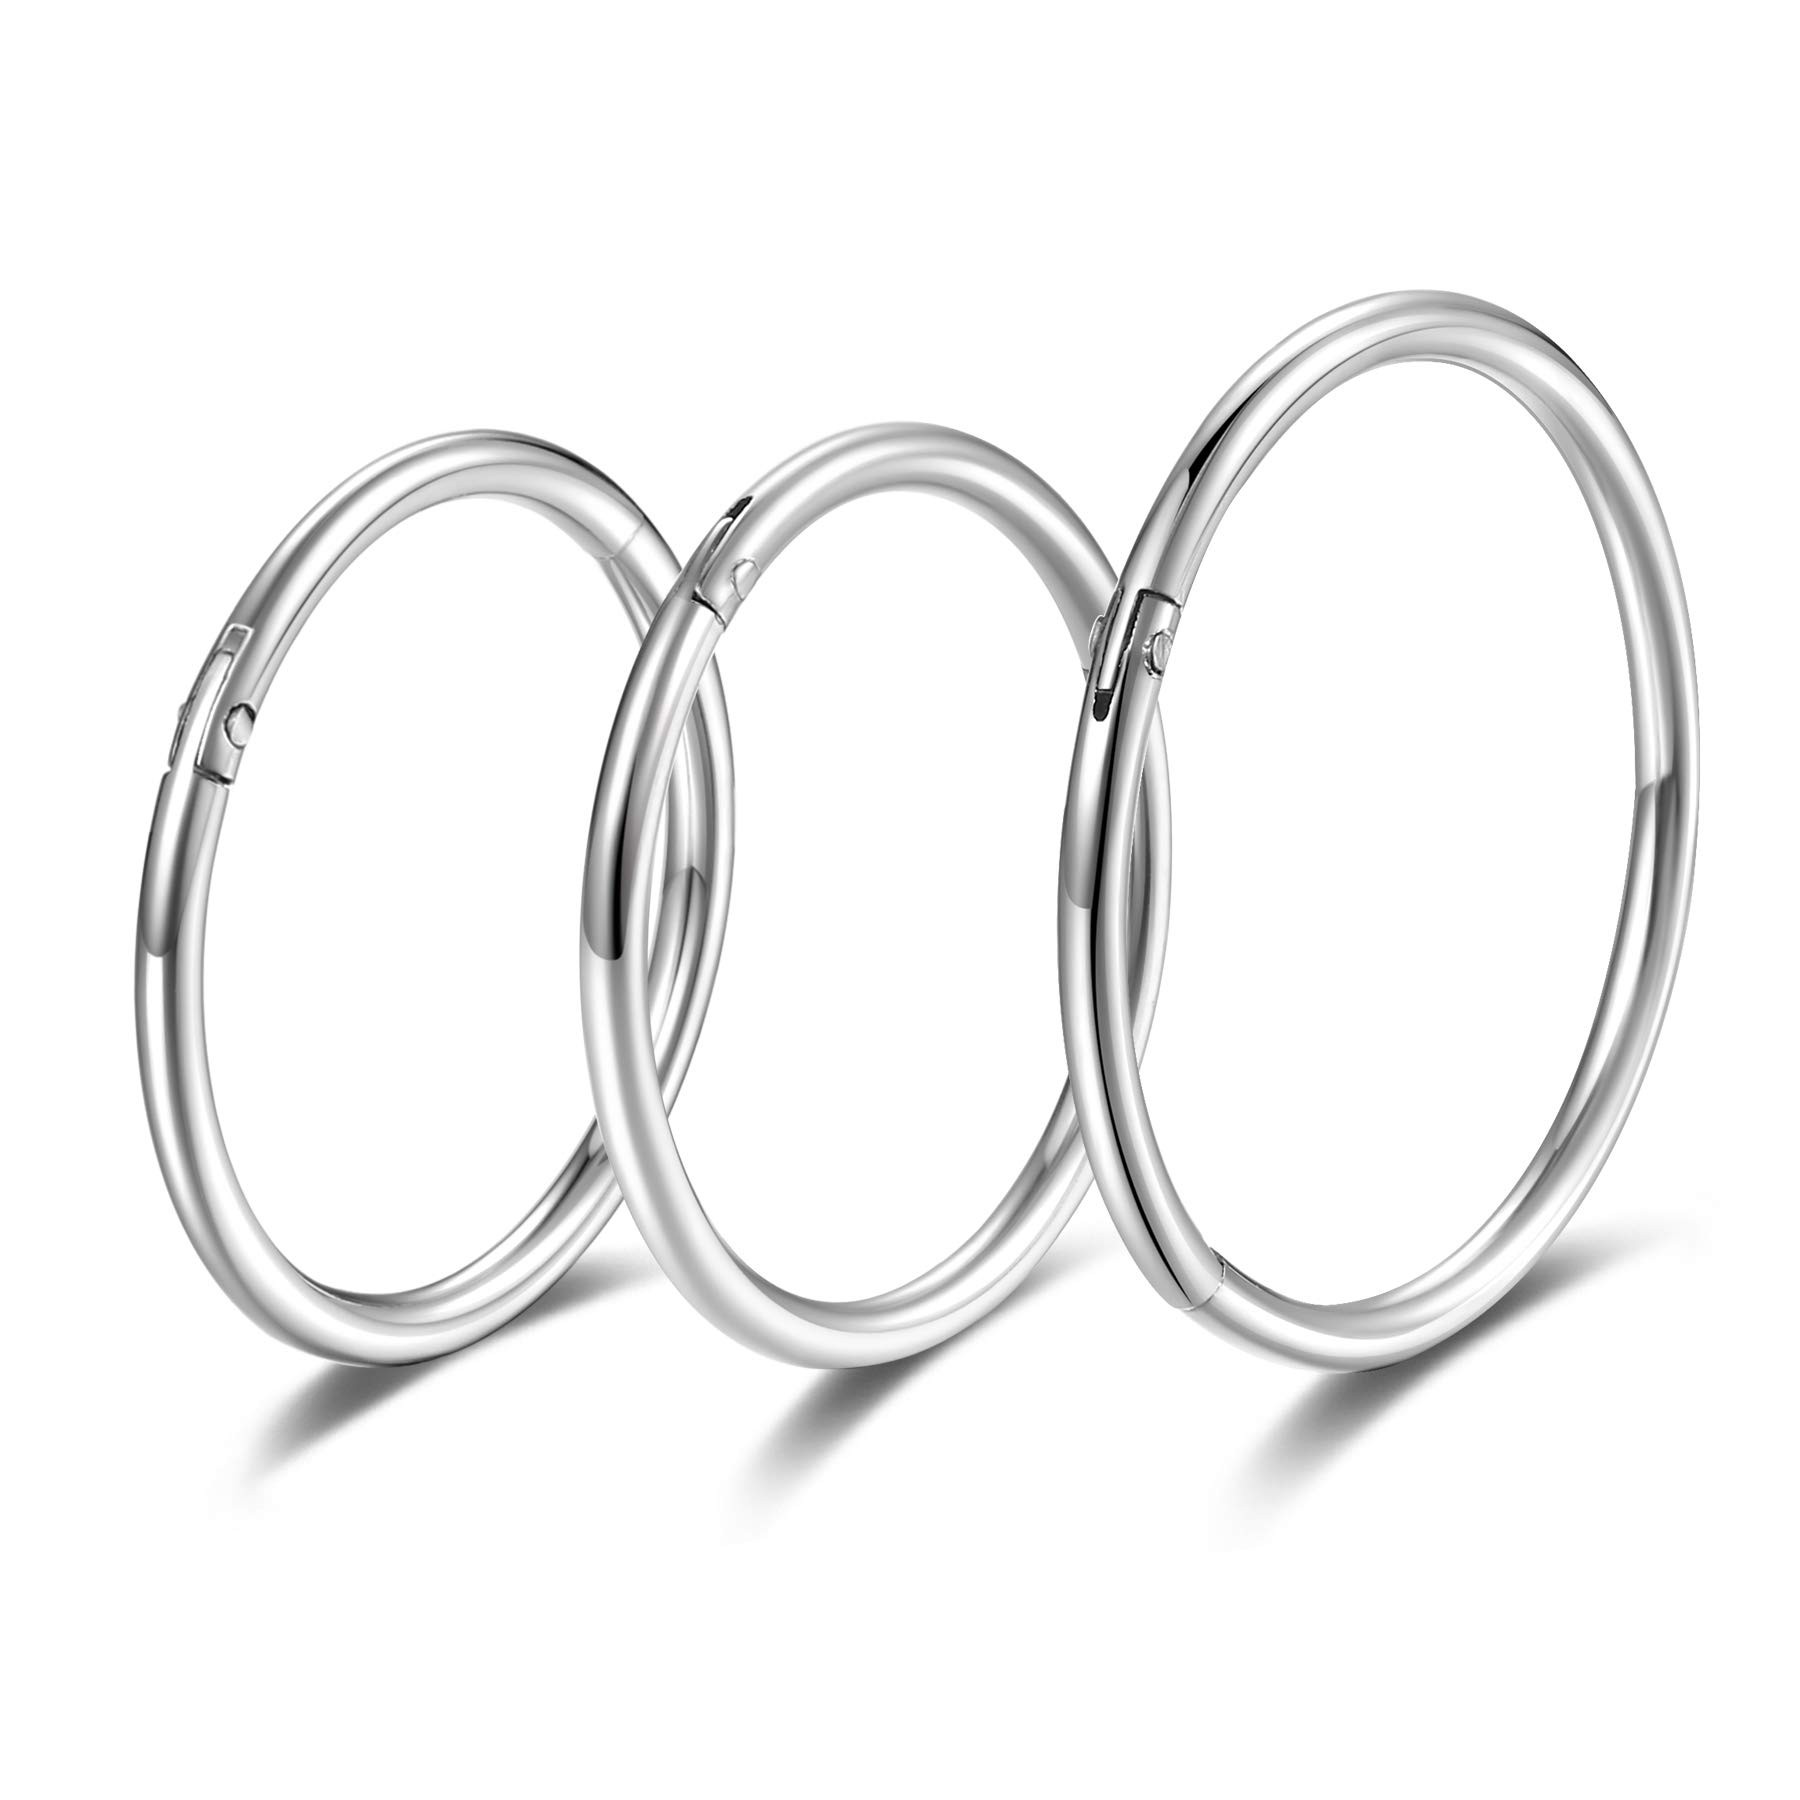 Hinged 20g 18g 16g Nose Rings Hoops 6mm 8mm 10mm 12mm 14mm 16mm Septum Ring Clicker Cartilage Helix Hoop Earrings Set